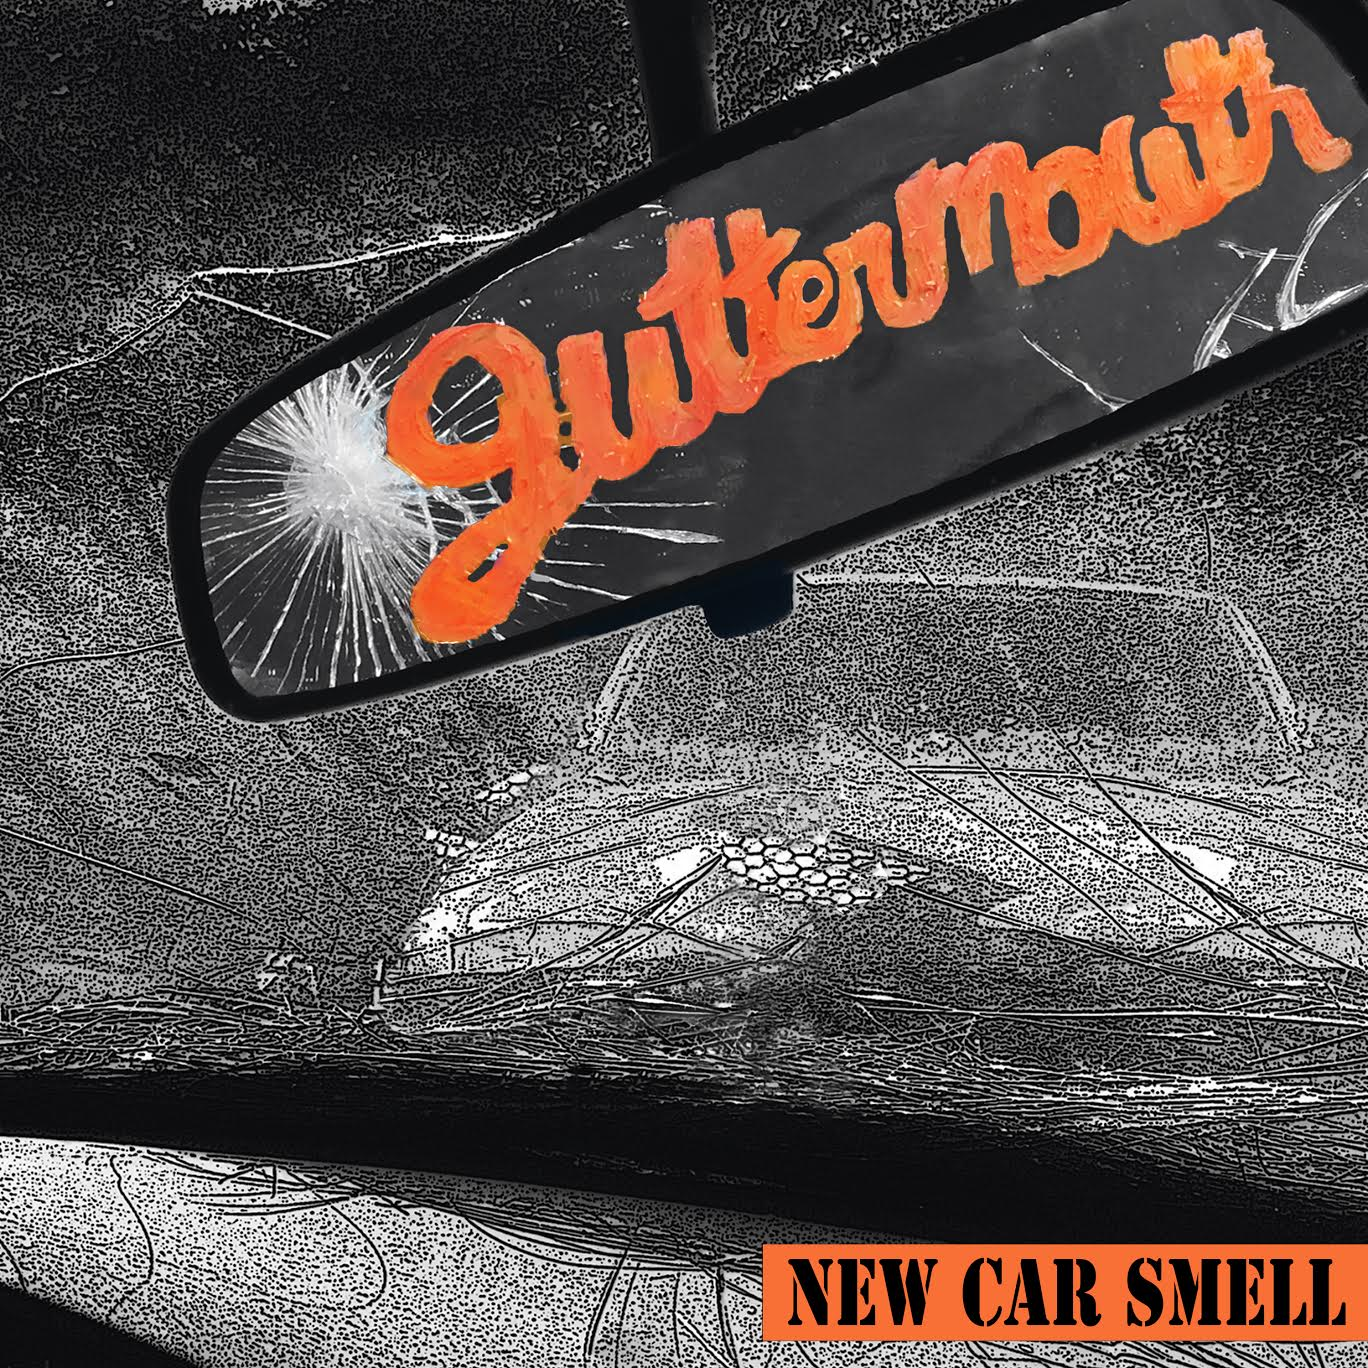 Guttermouth – New Car Smell